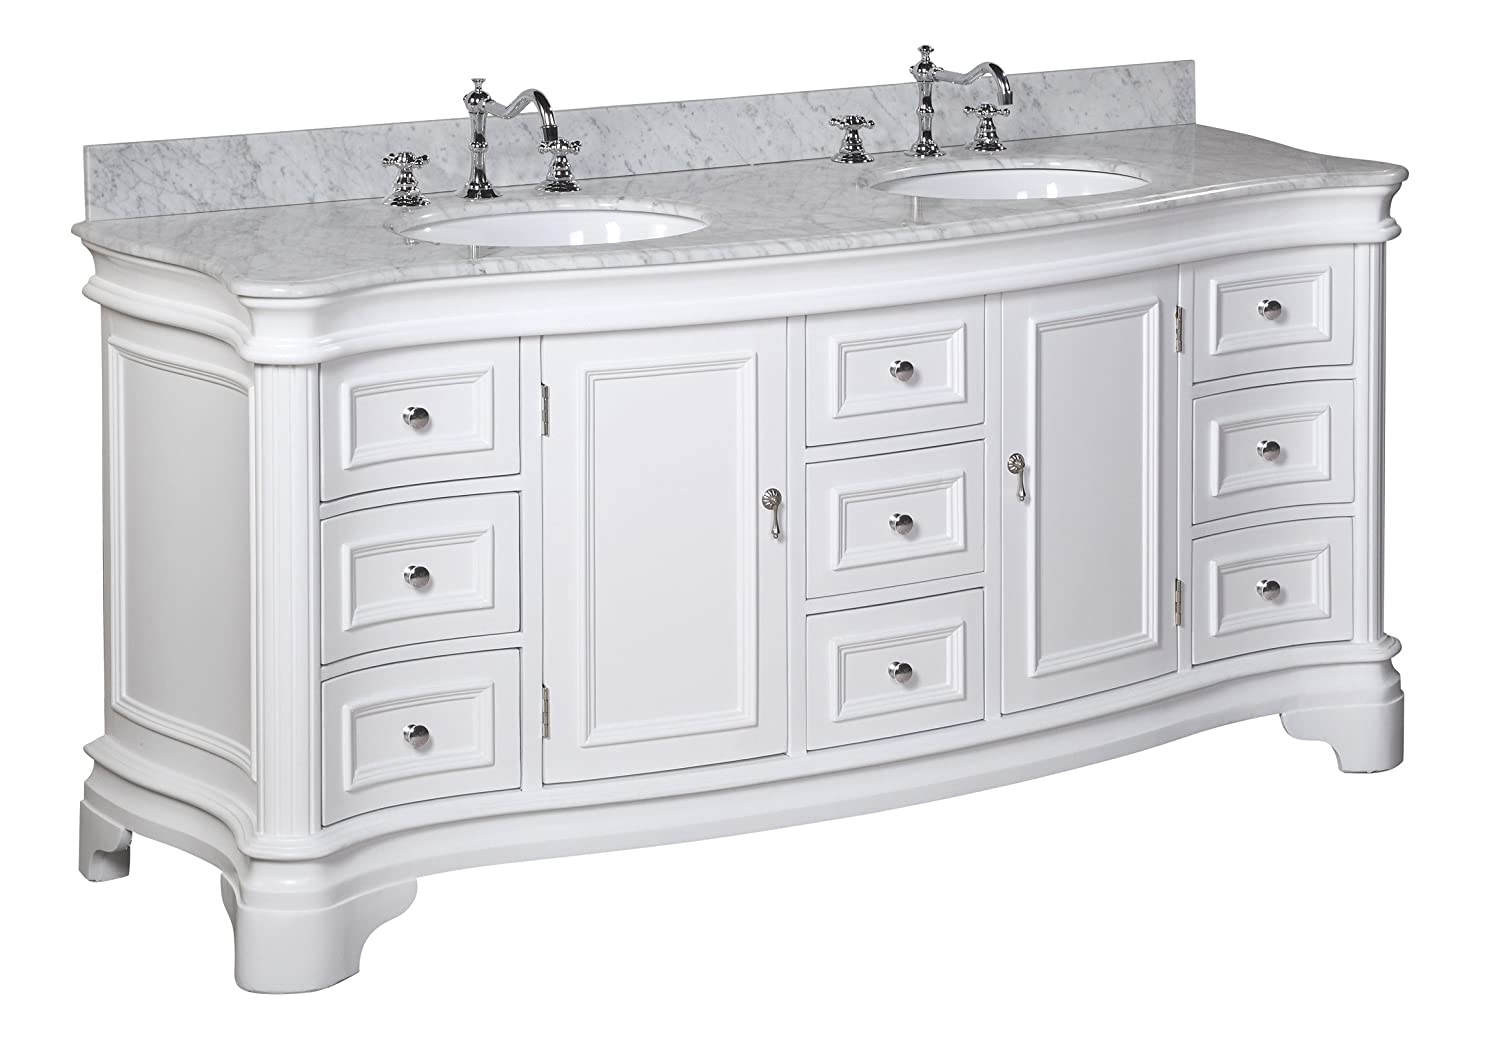 Katherine 72-inch Double Vanity Carrara White Includes White Cabinet with Authentic Italian Carrara Marble Countertop and White Ceramic Sinks